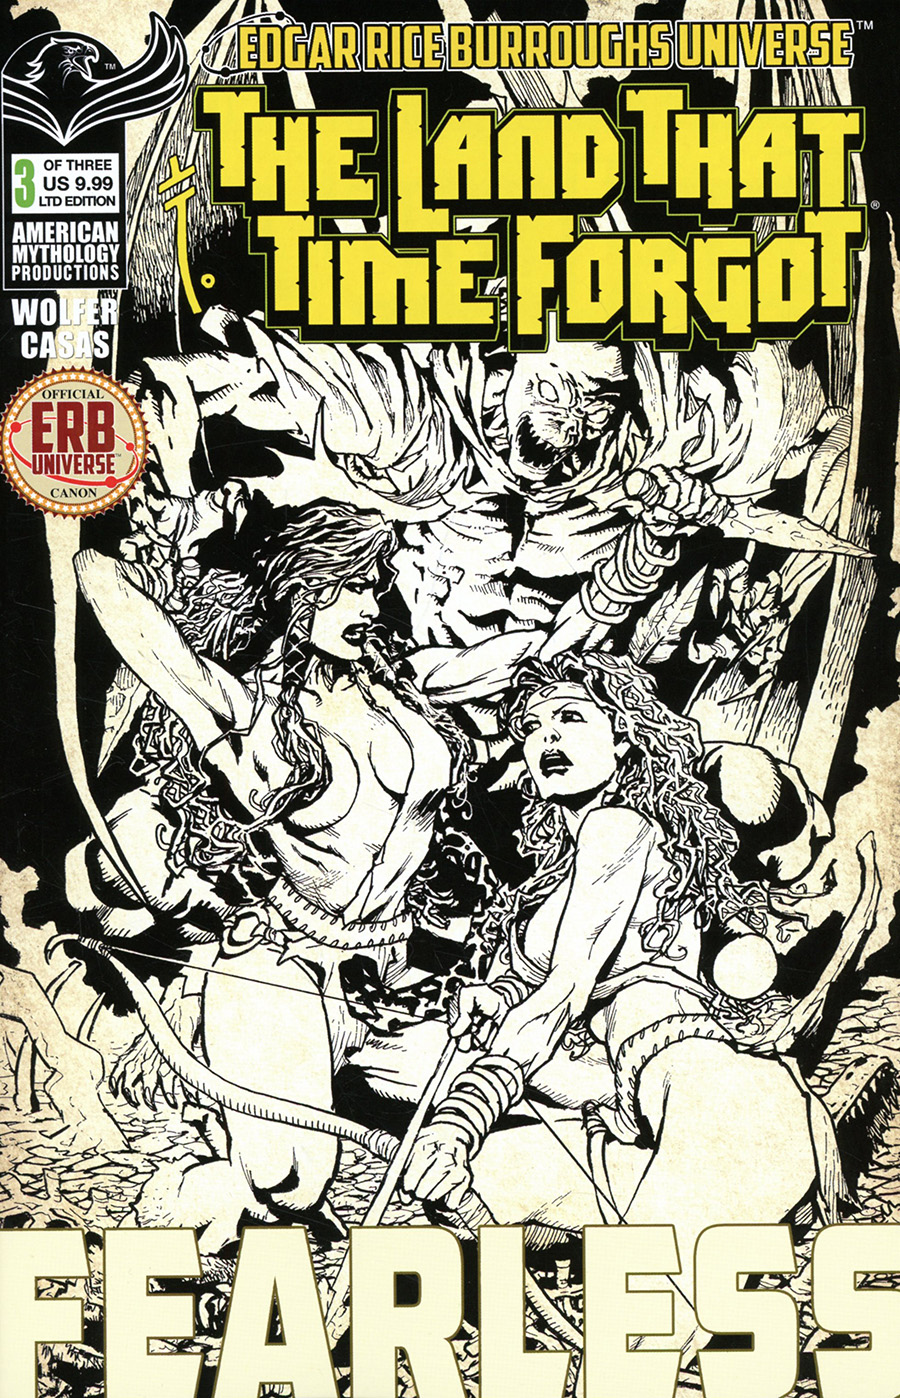 Land That Time Forgot Fearless #3 Cover B Limited Edition Roy Allan Martinez Black & White Cover